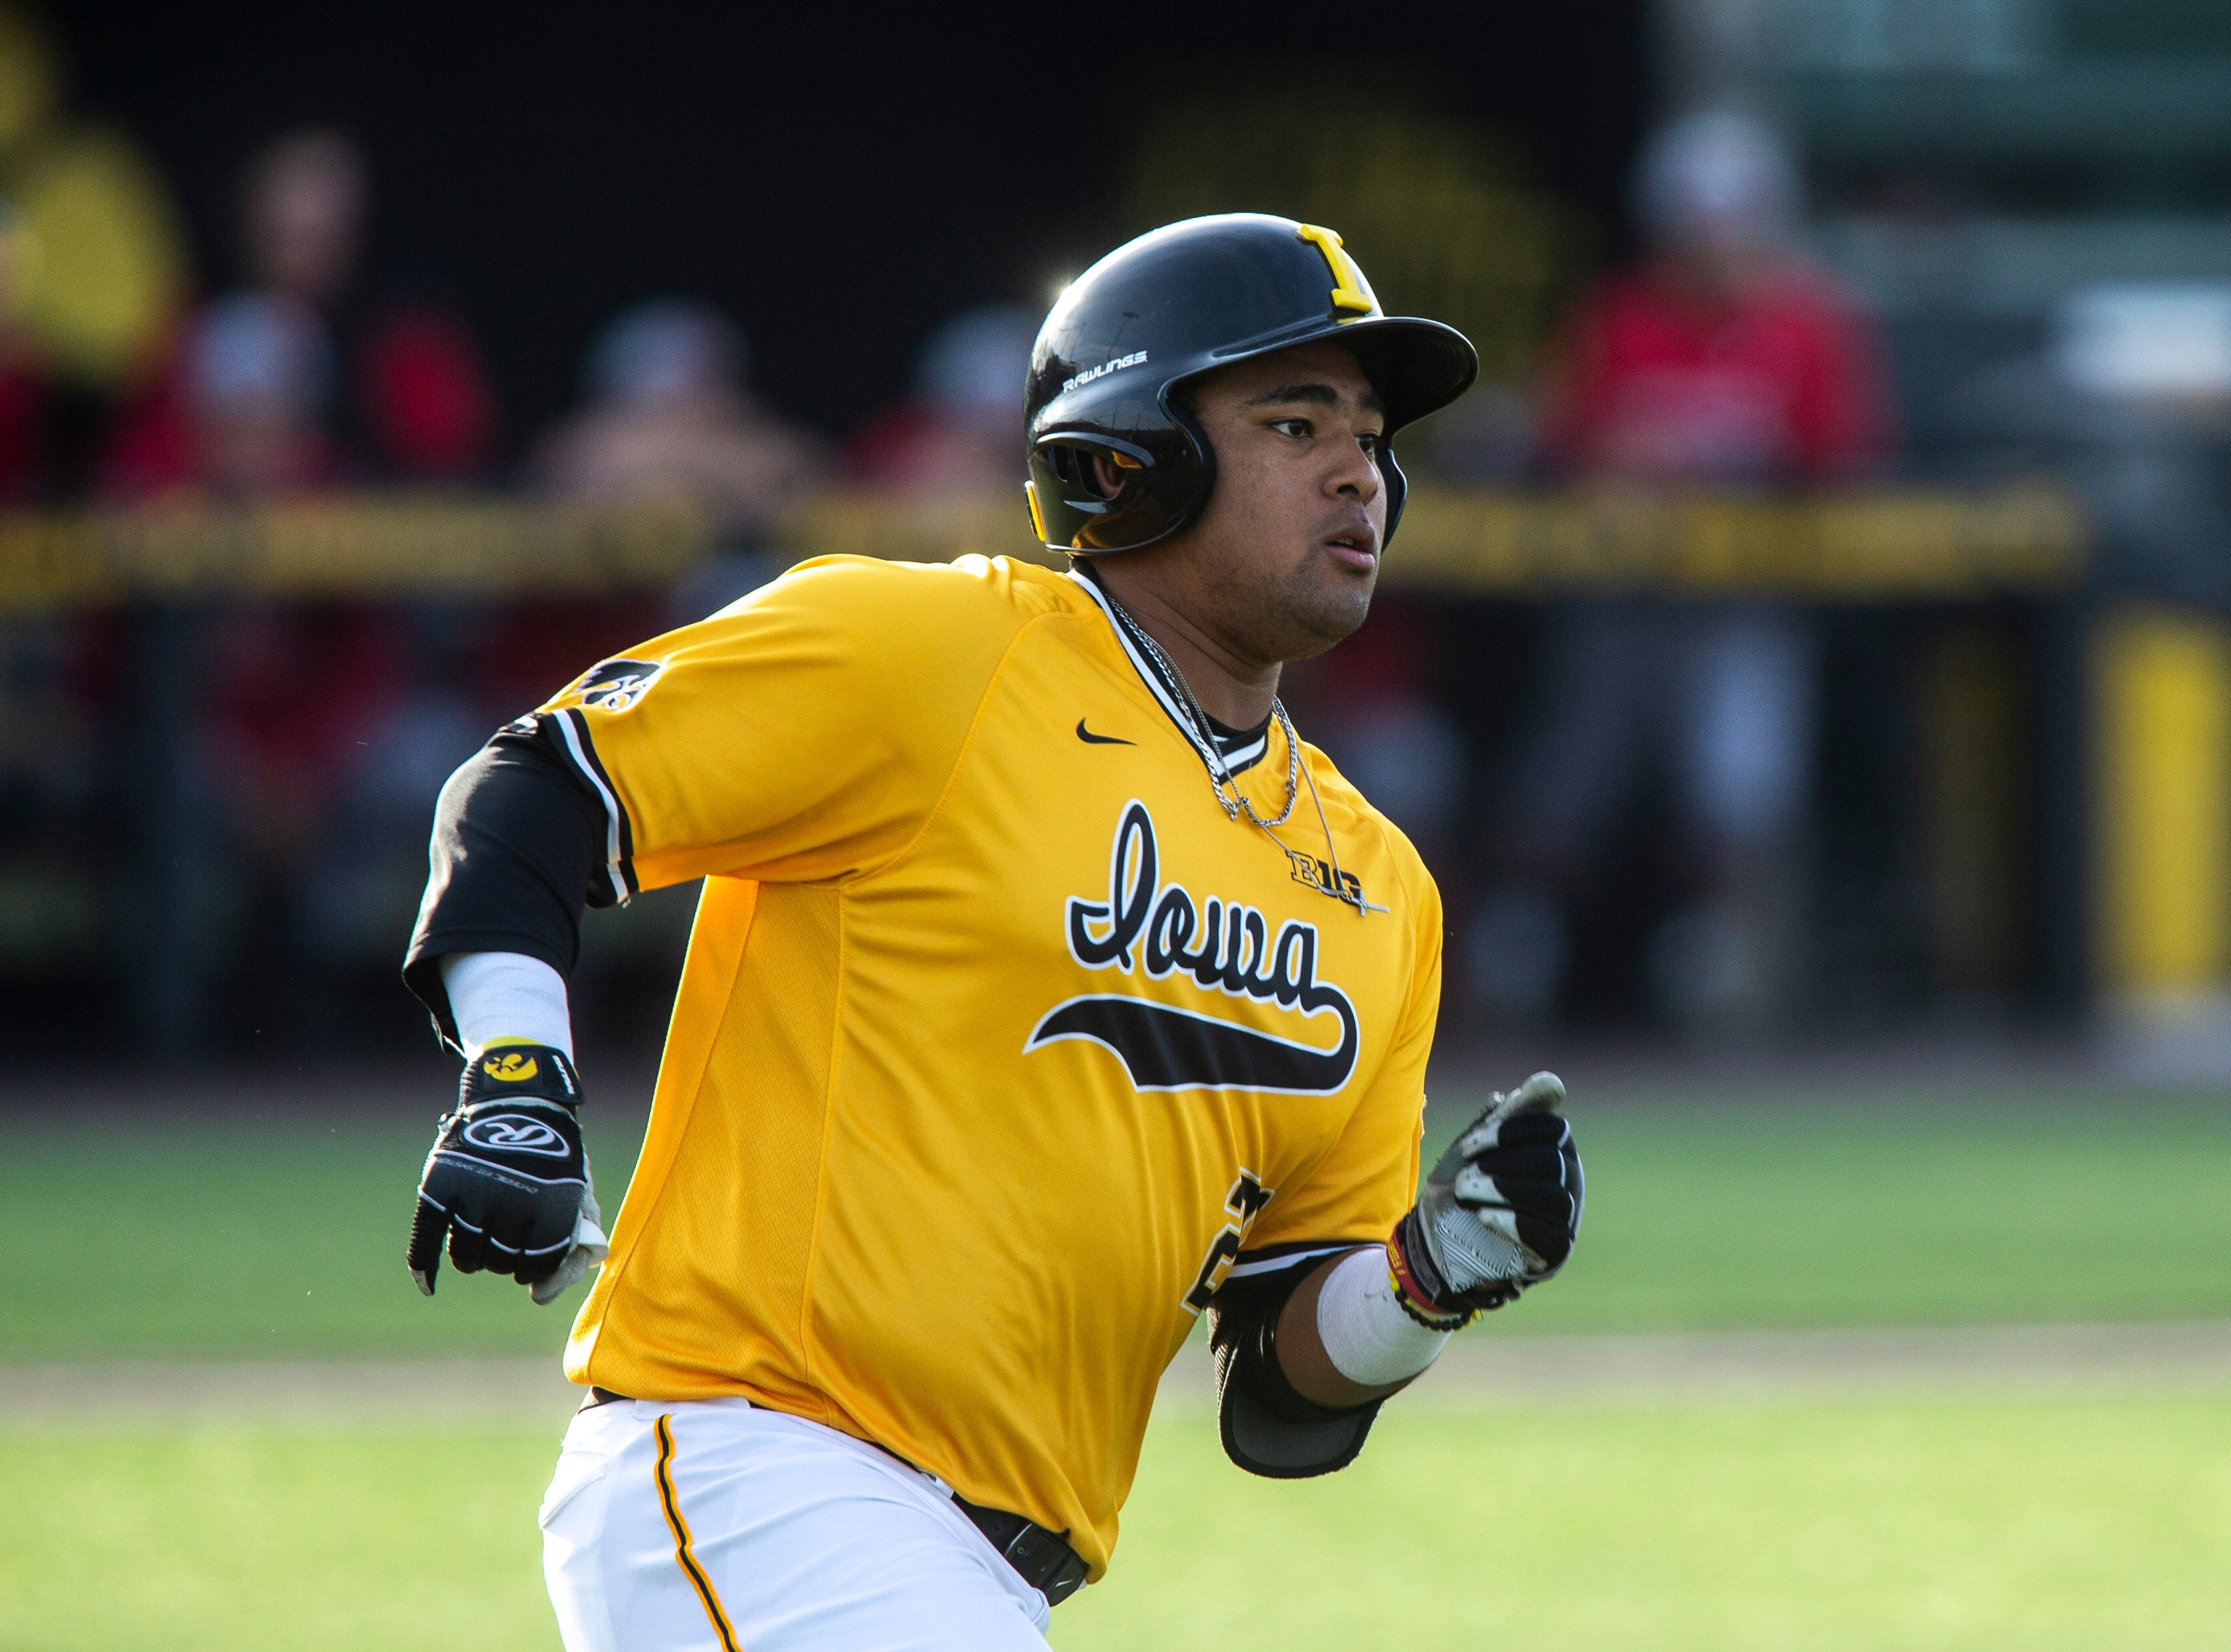 Iowa infielder Izaya Fullard (20) runs to first on a single during a NCAA Big Ten Conference baseball game on Saturday, April 6, 2019, at Duane Banks Field in Iowa City, Iowa.